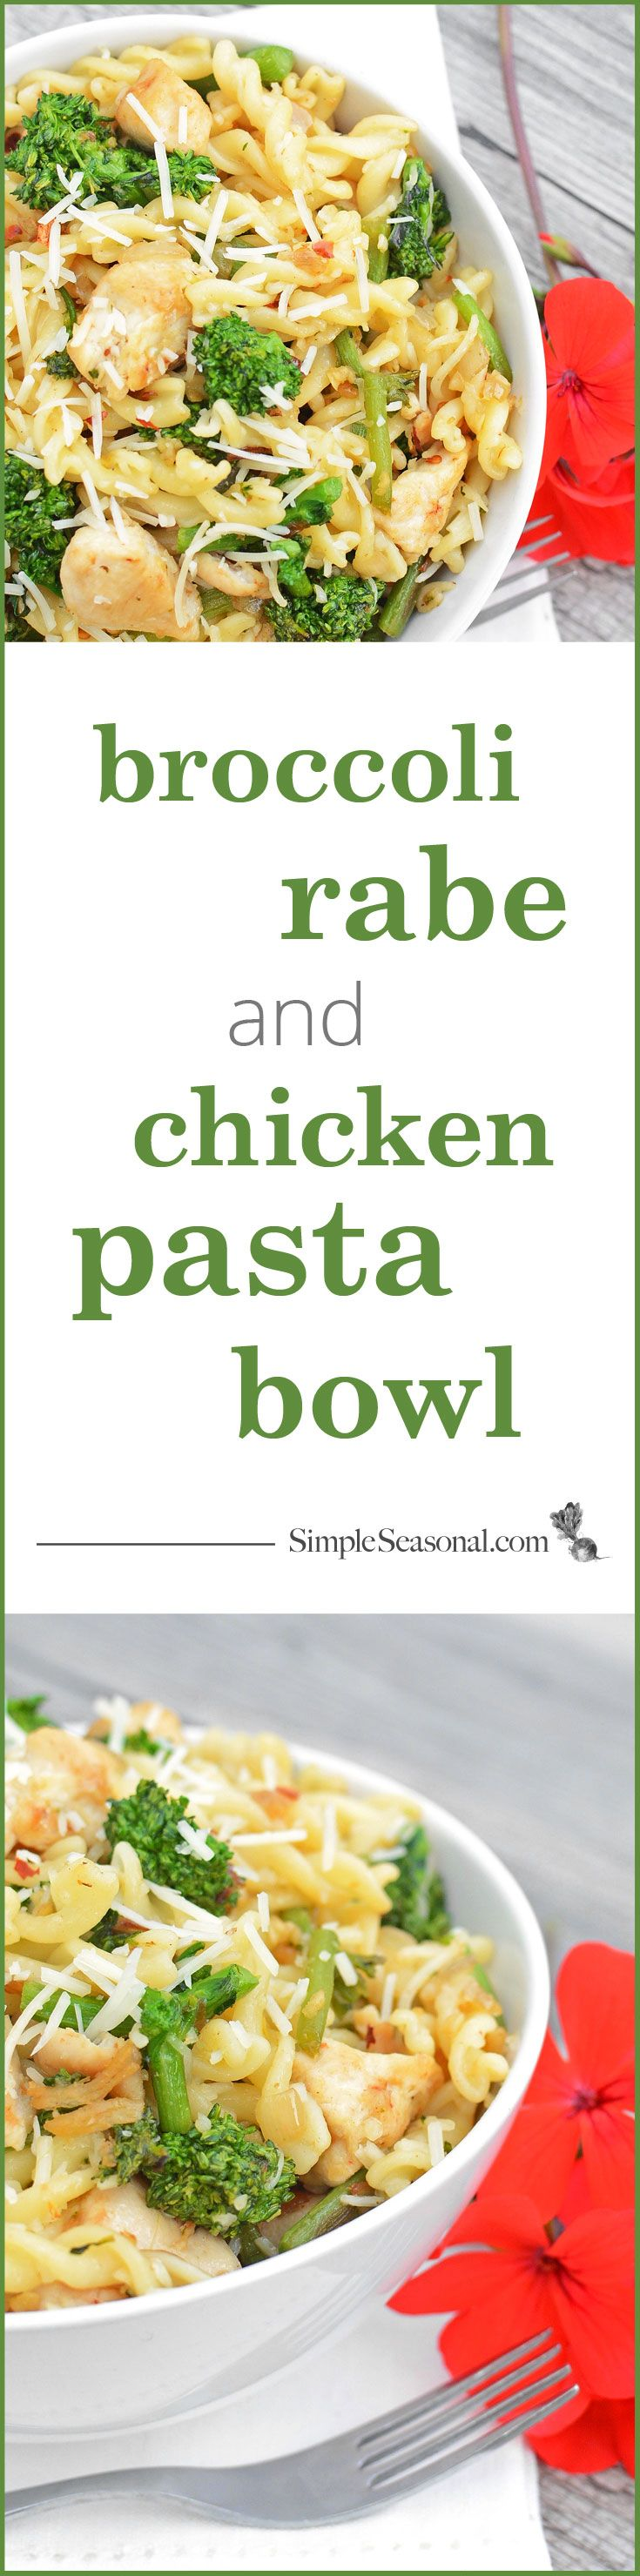 Broccoli Rabe and Chicken Pasta Bowl - Pasta bowls are a simple, flavorful, and easy to prepare weeknight dinner. The secret, however, to a truly delicious pasta bowl lies in attention to how the pasta is cooked. Learn the secret to making perfect pasta every time and test your new skills on this lovely dish that combines the spiciness of broccoli rabe with fresh garlic, juicy chicken tenderloin, and parmesan cheese.